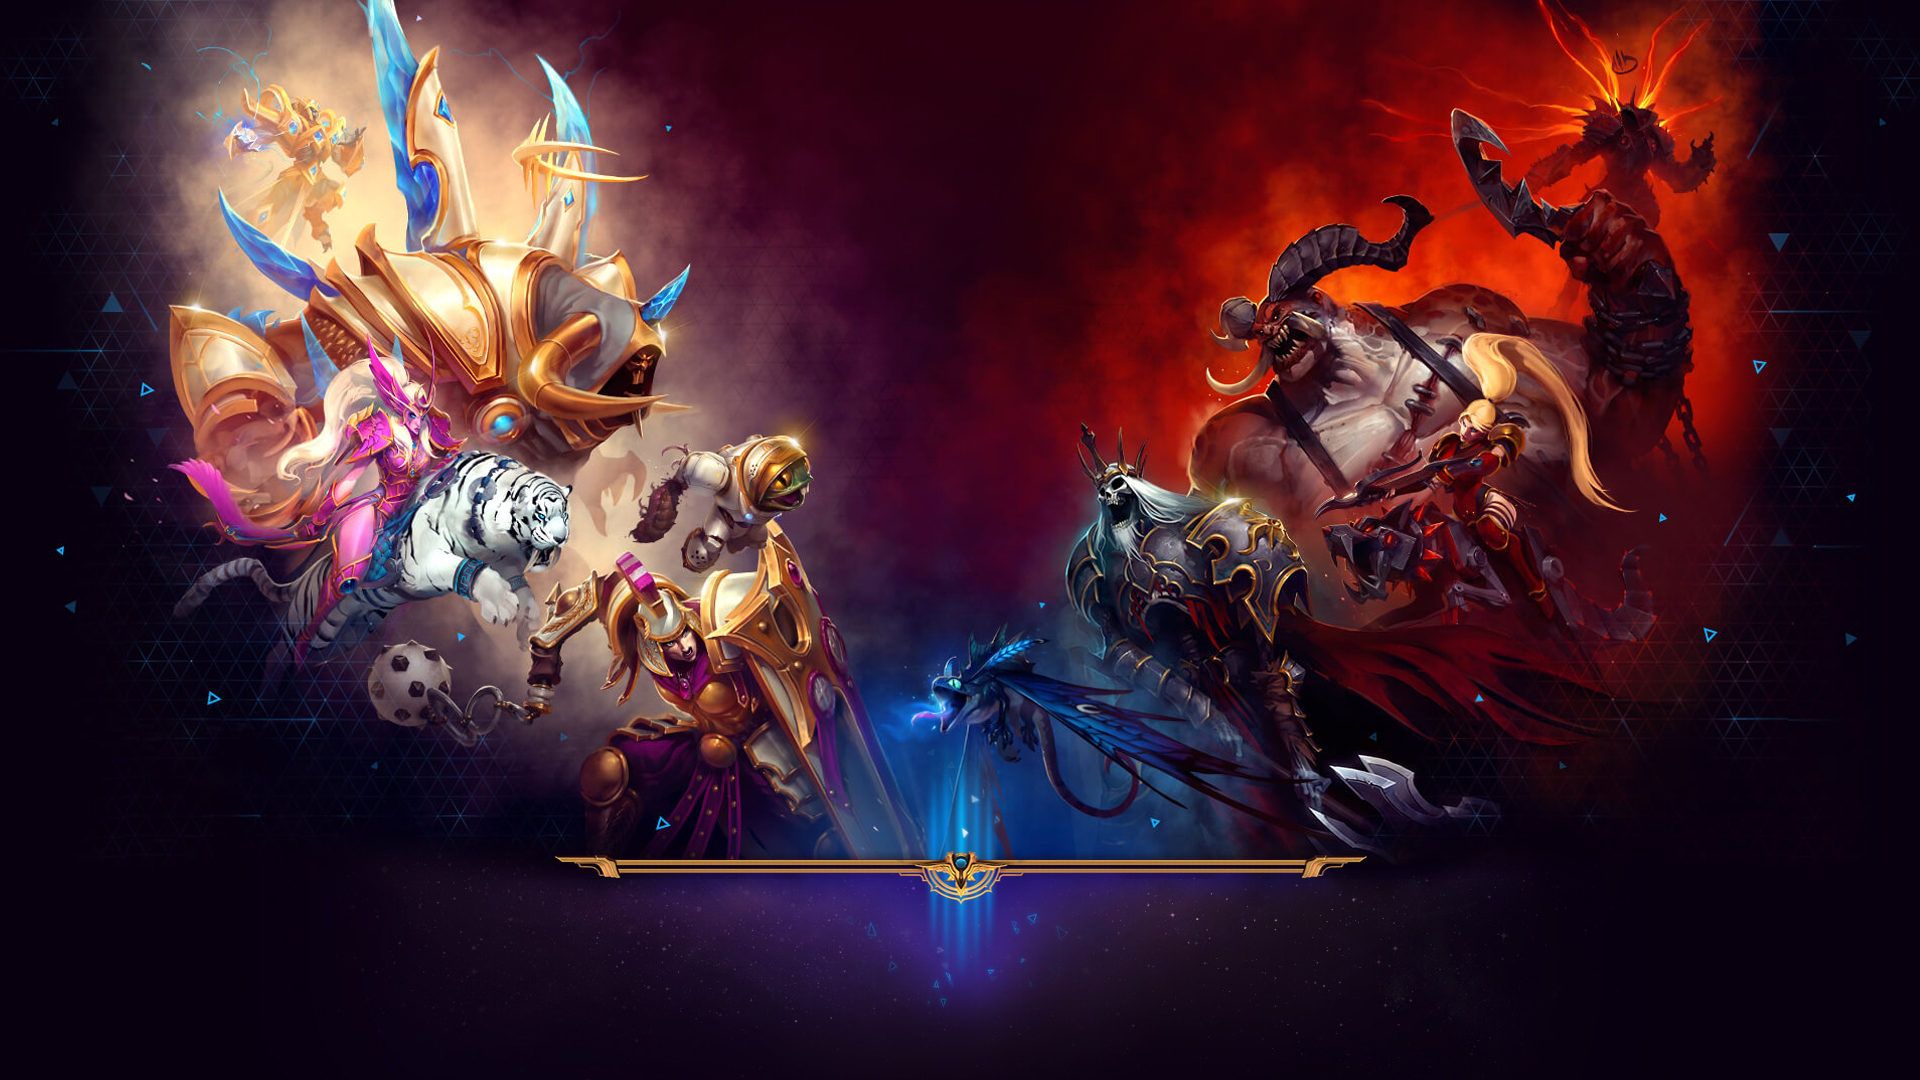 Heroes Of The Storm Wallpapers 4K 1920x1080   4USkY 1920x1080